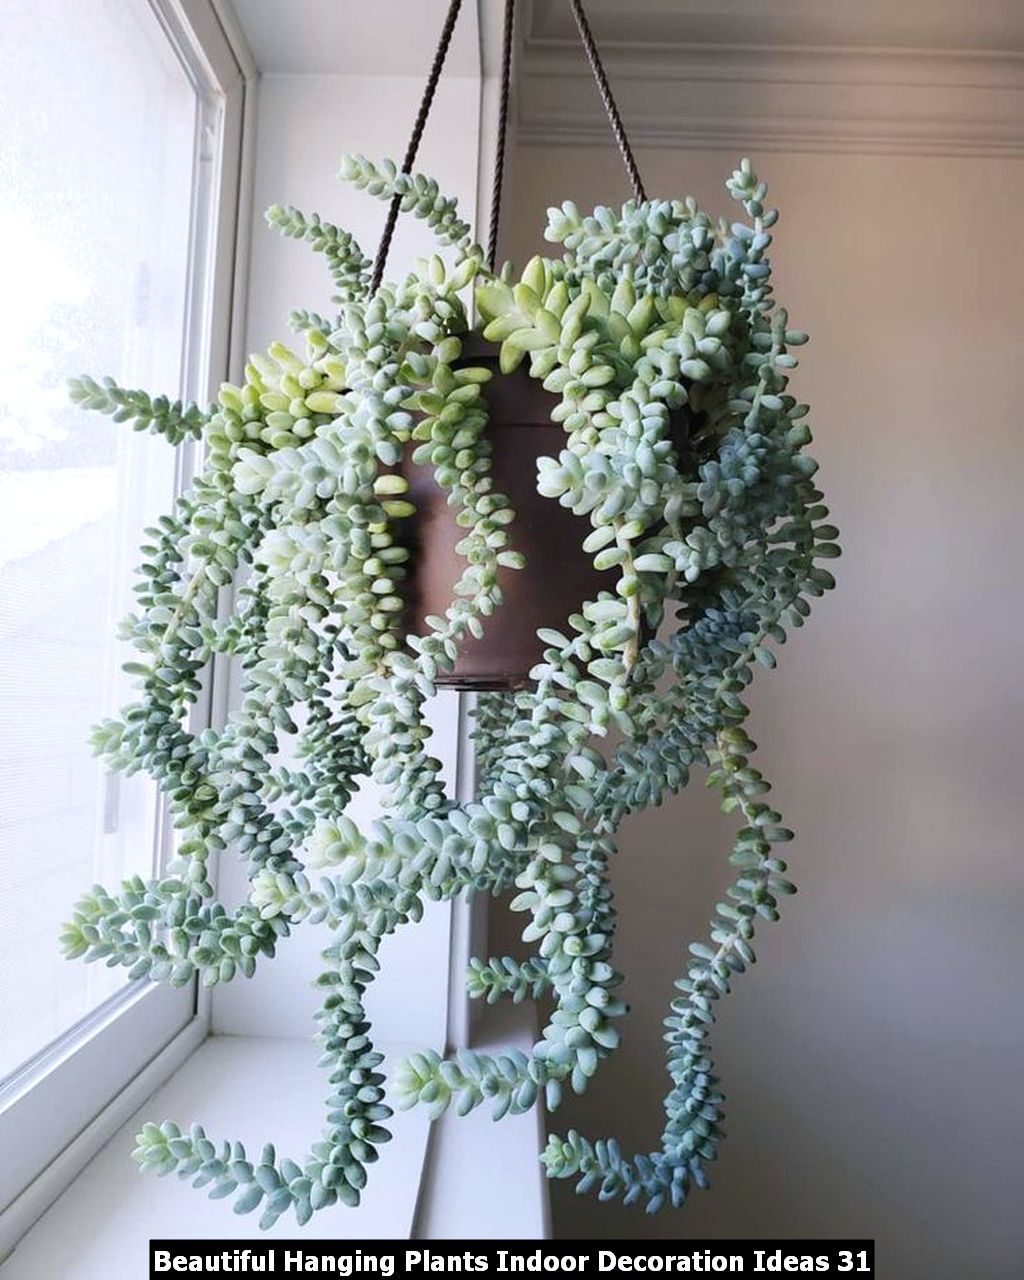 Beautiful Hanging Plants Indoor Decoration Ideas 31